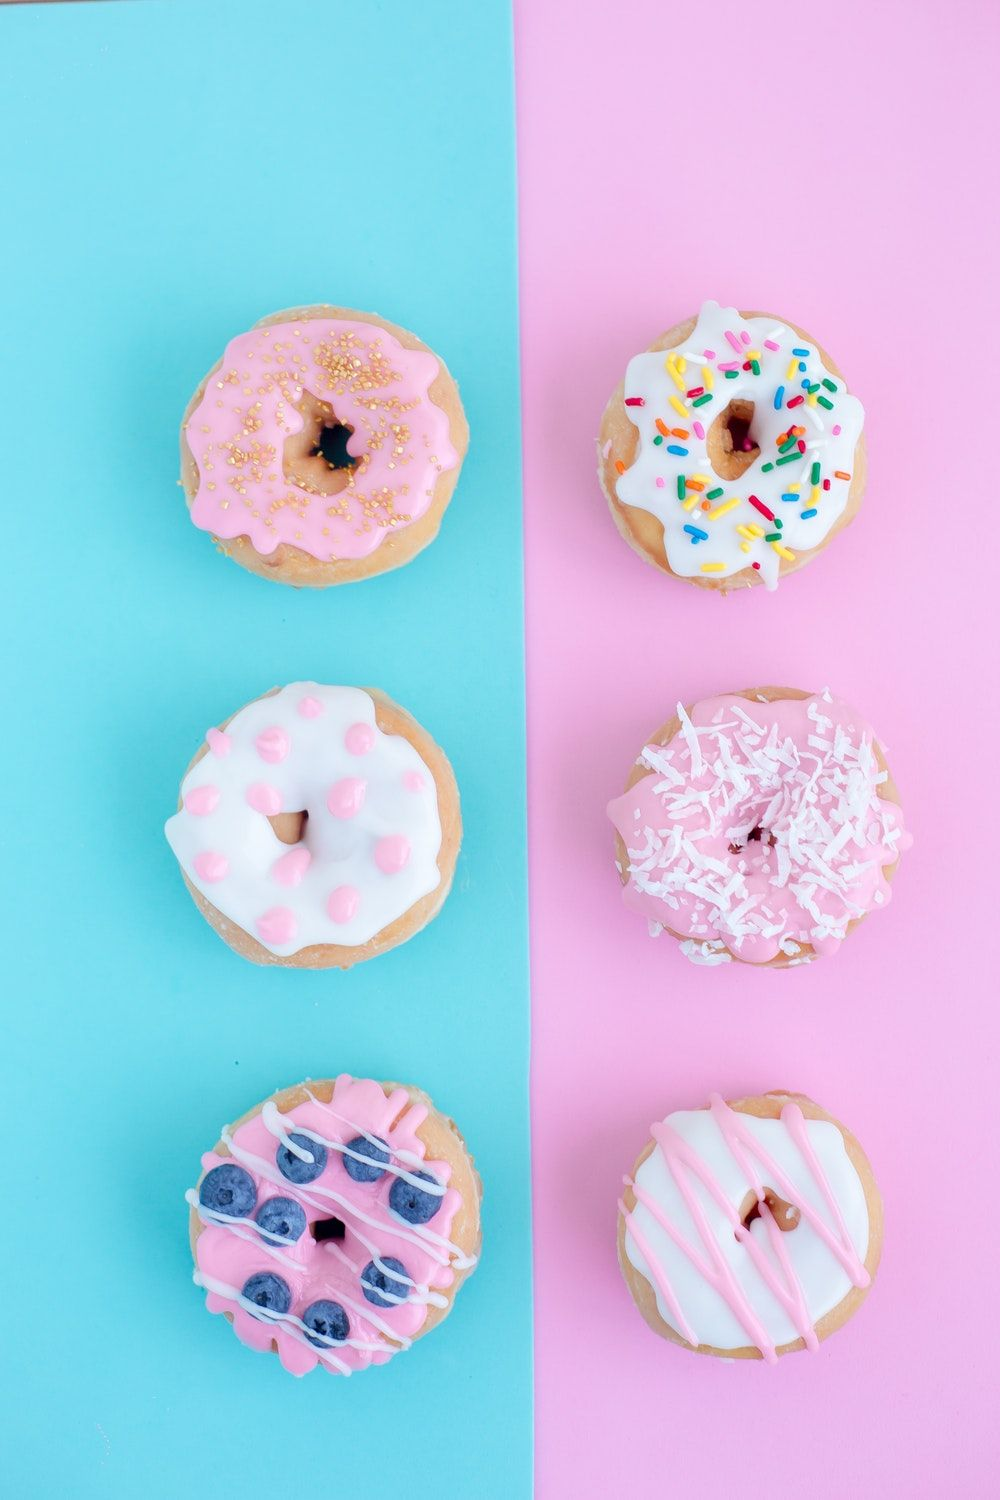 1000x1500 Sweets Pictures   Download Free Images on Unsplash